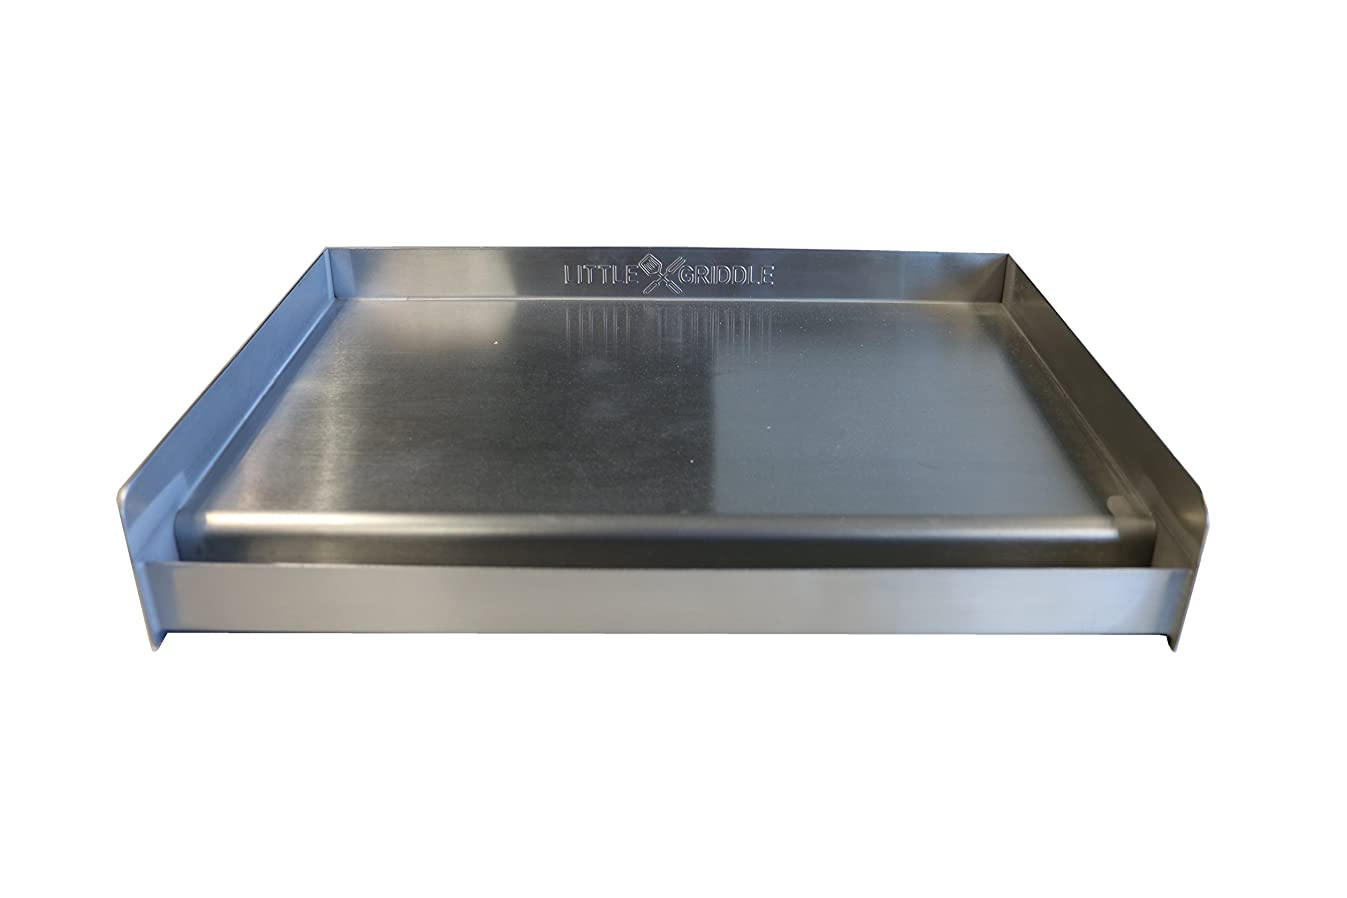 Little Griddle SQ180 100% Stainless Steel Universal Griddle with Even Heating Cross Bracing for Charcoal/Gas Grills, Camping, Tailgating, and Parties (18